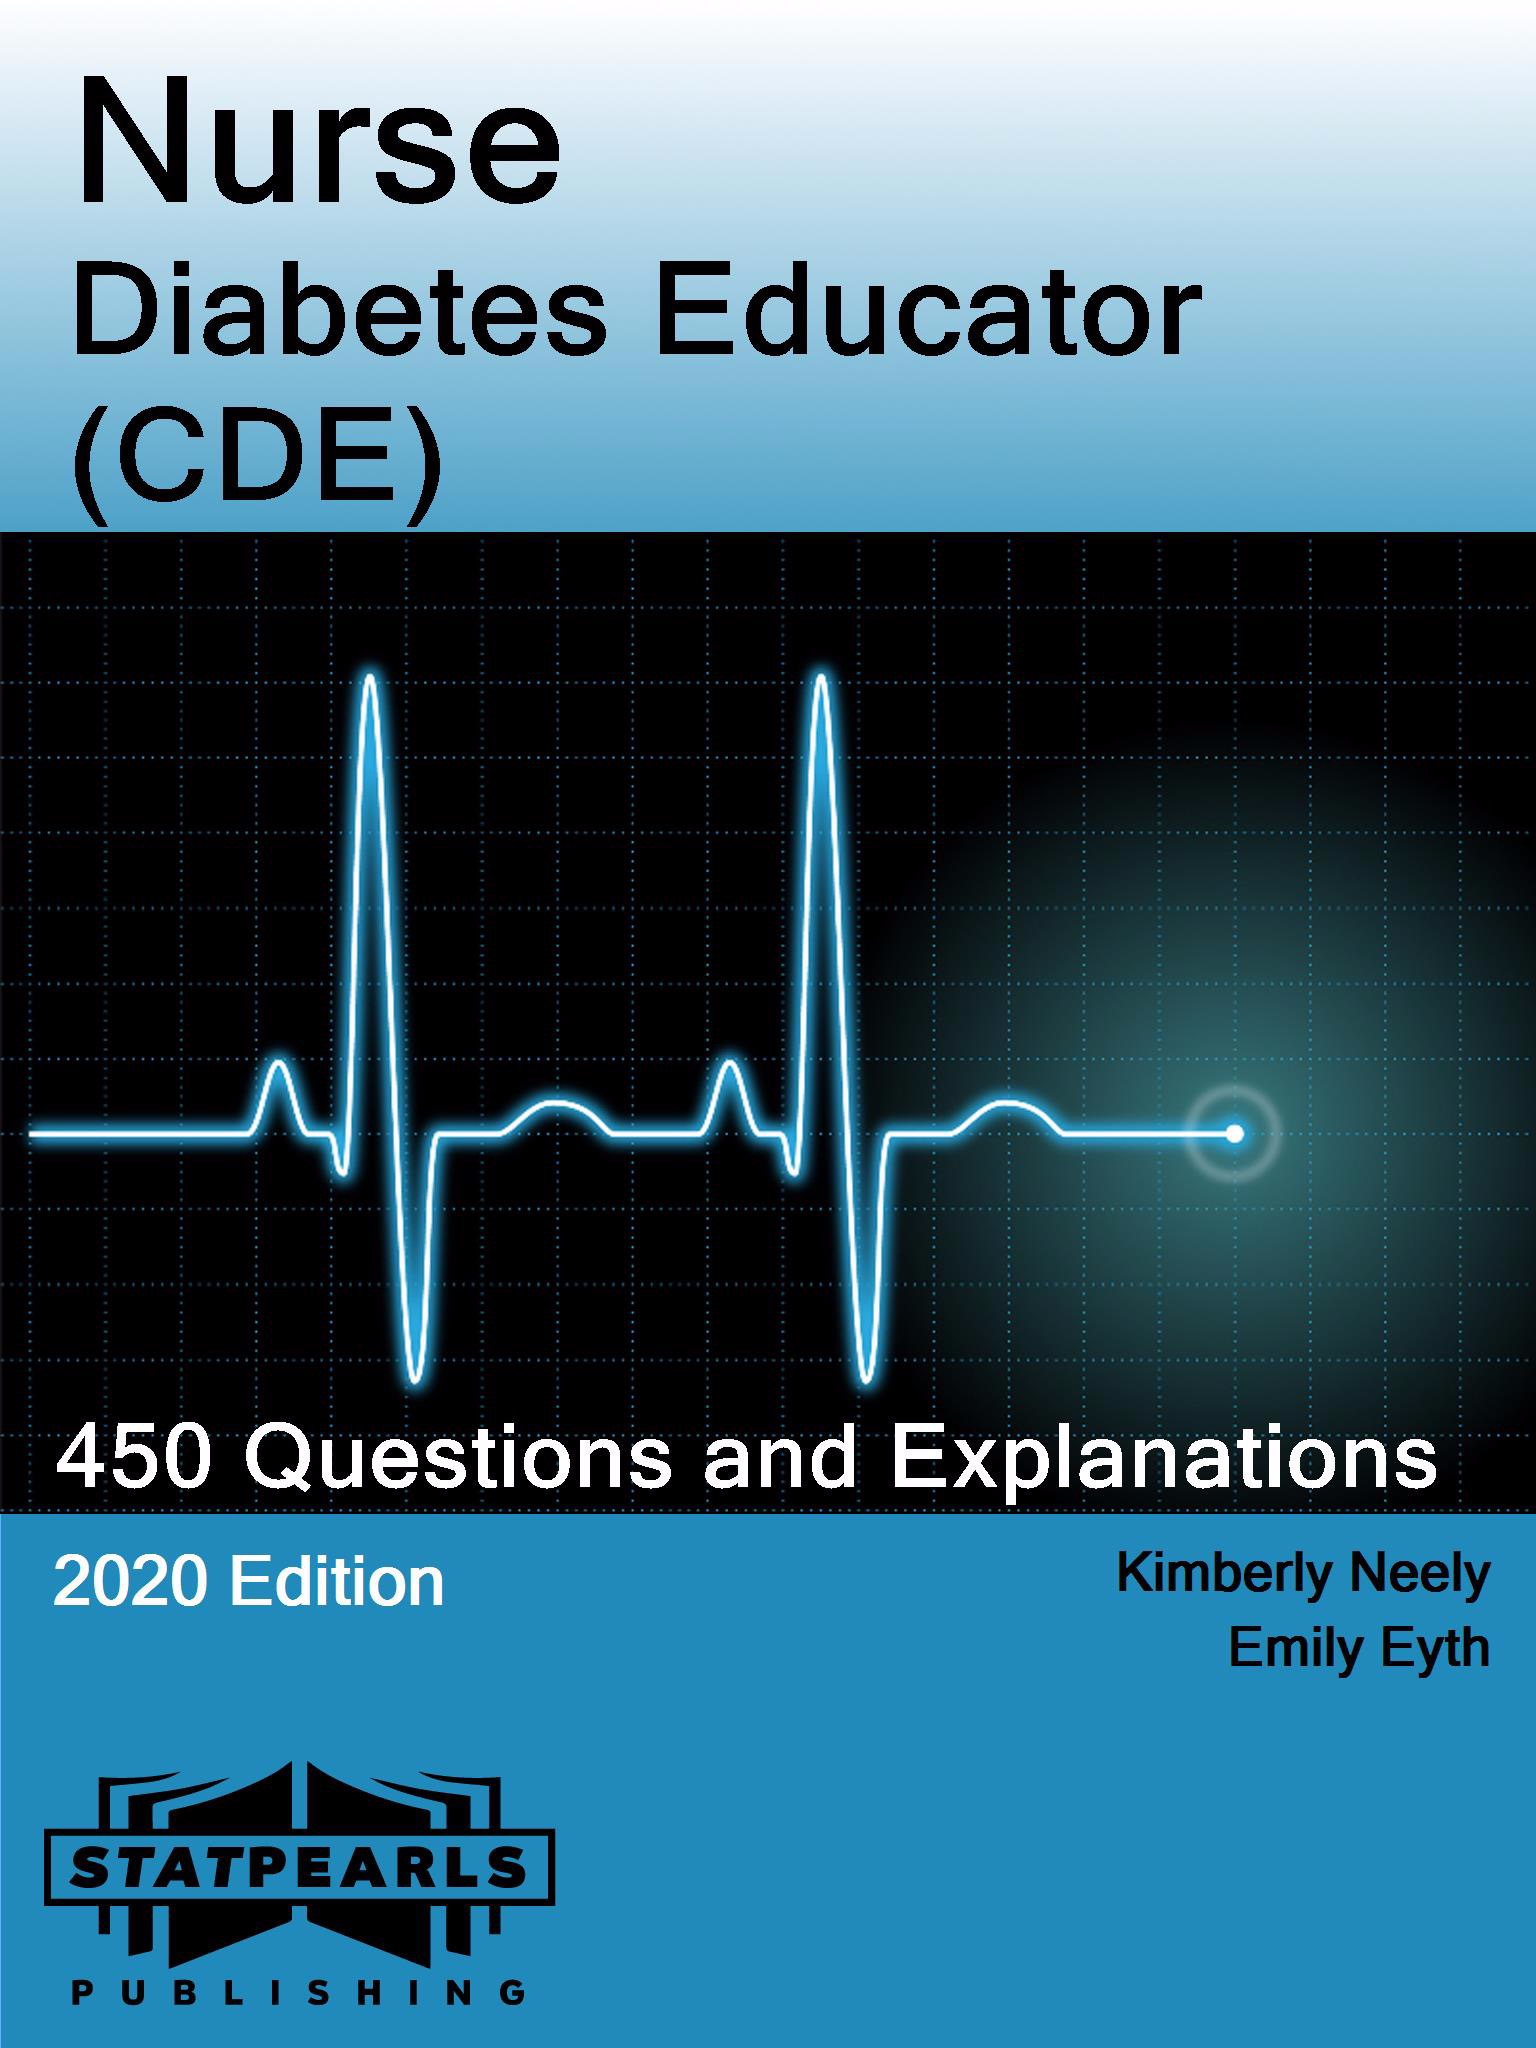 Nurse Diabetes Educator (CDE)